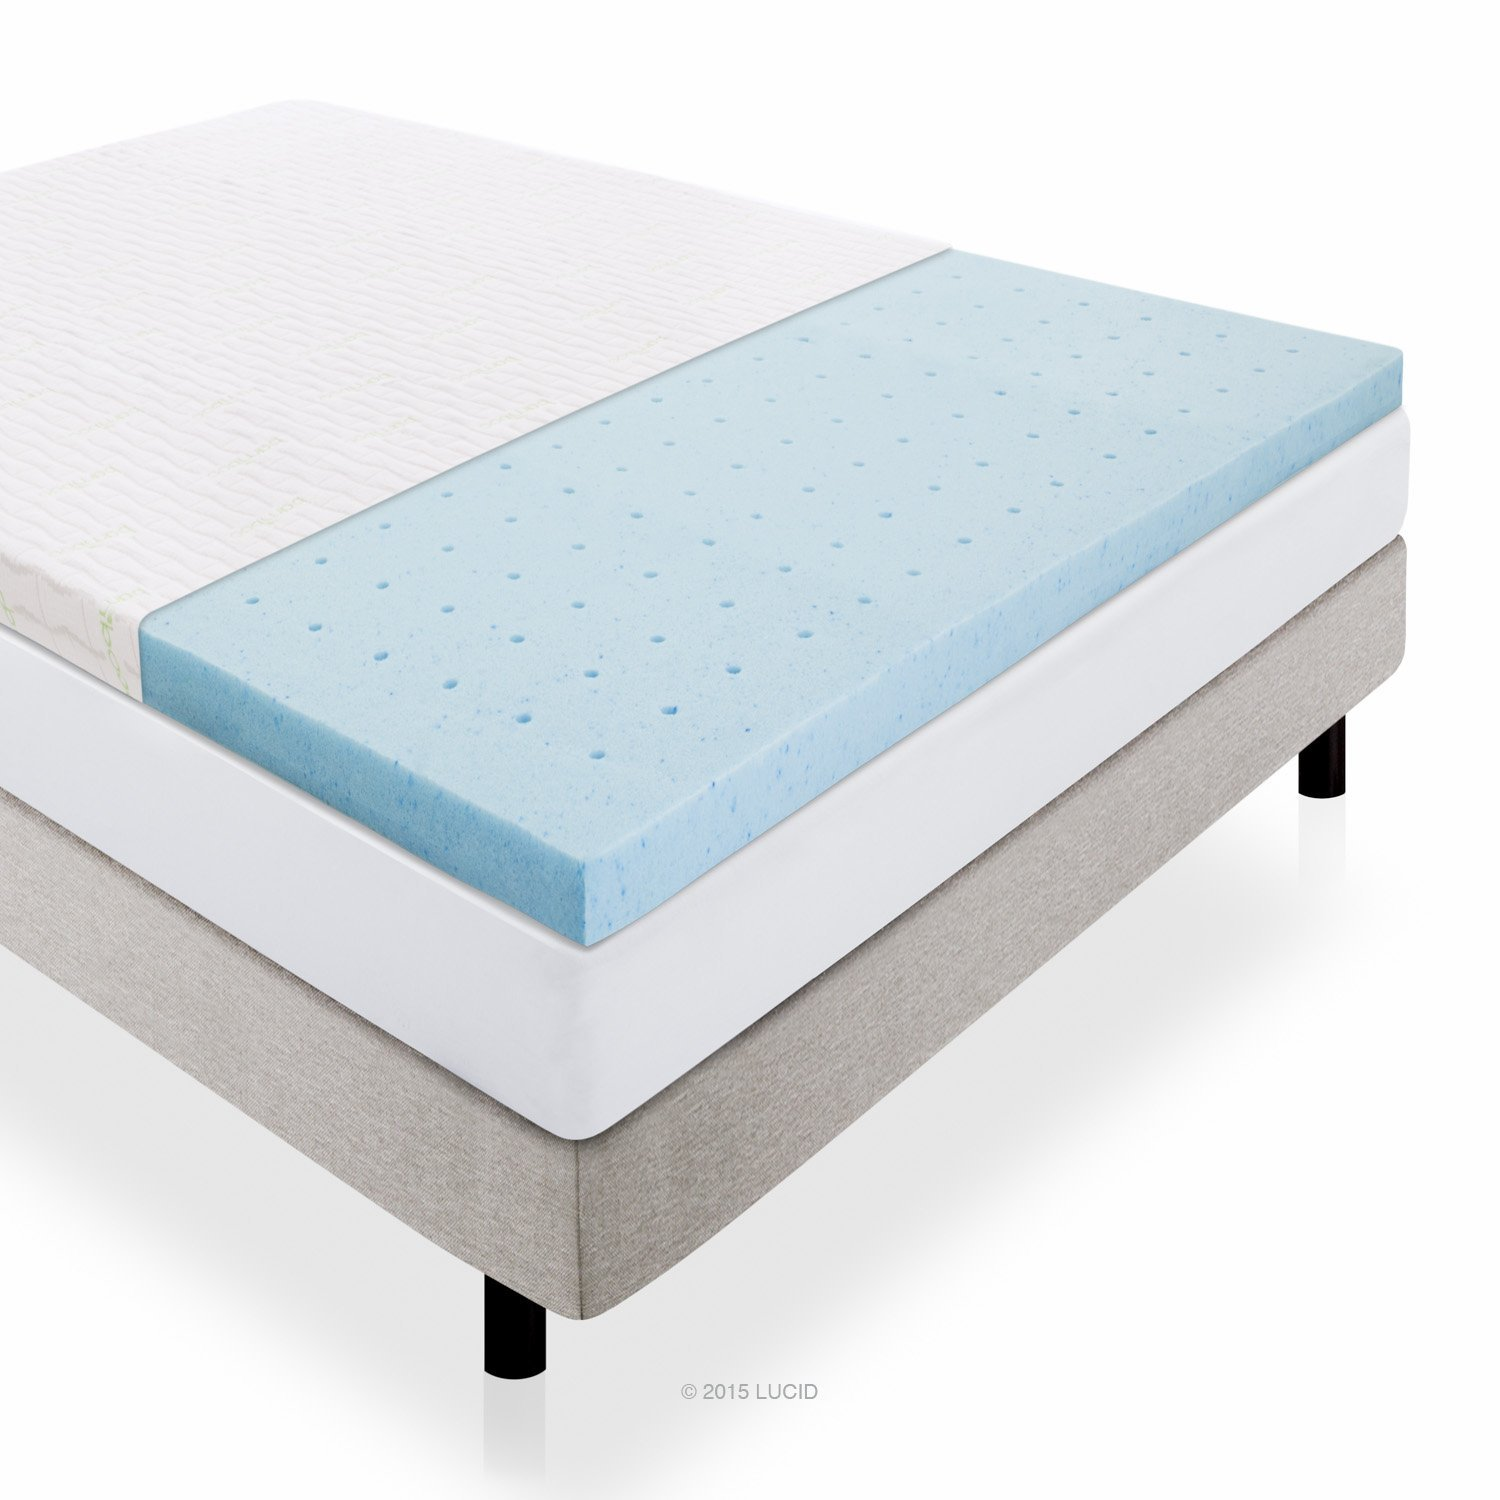 Top 10 Best Mattress Topper Reviews — Main Brands on the Market in 2020